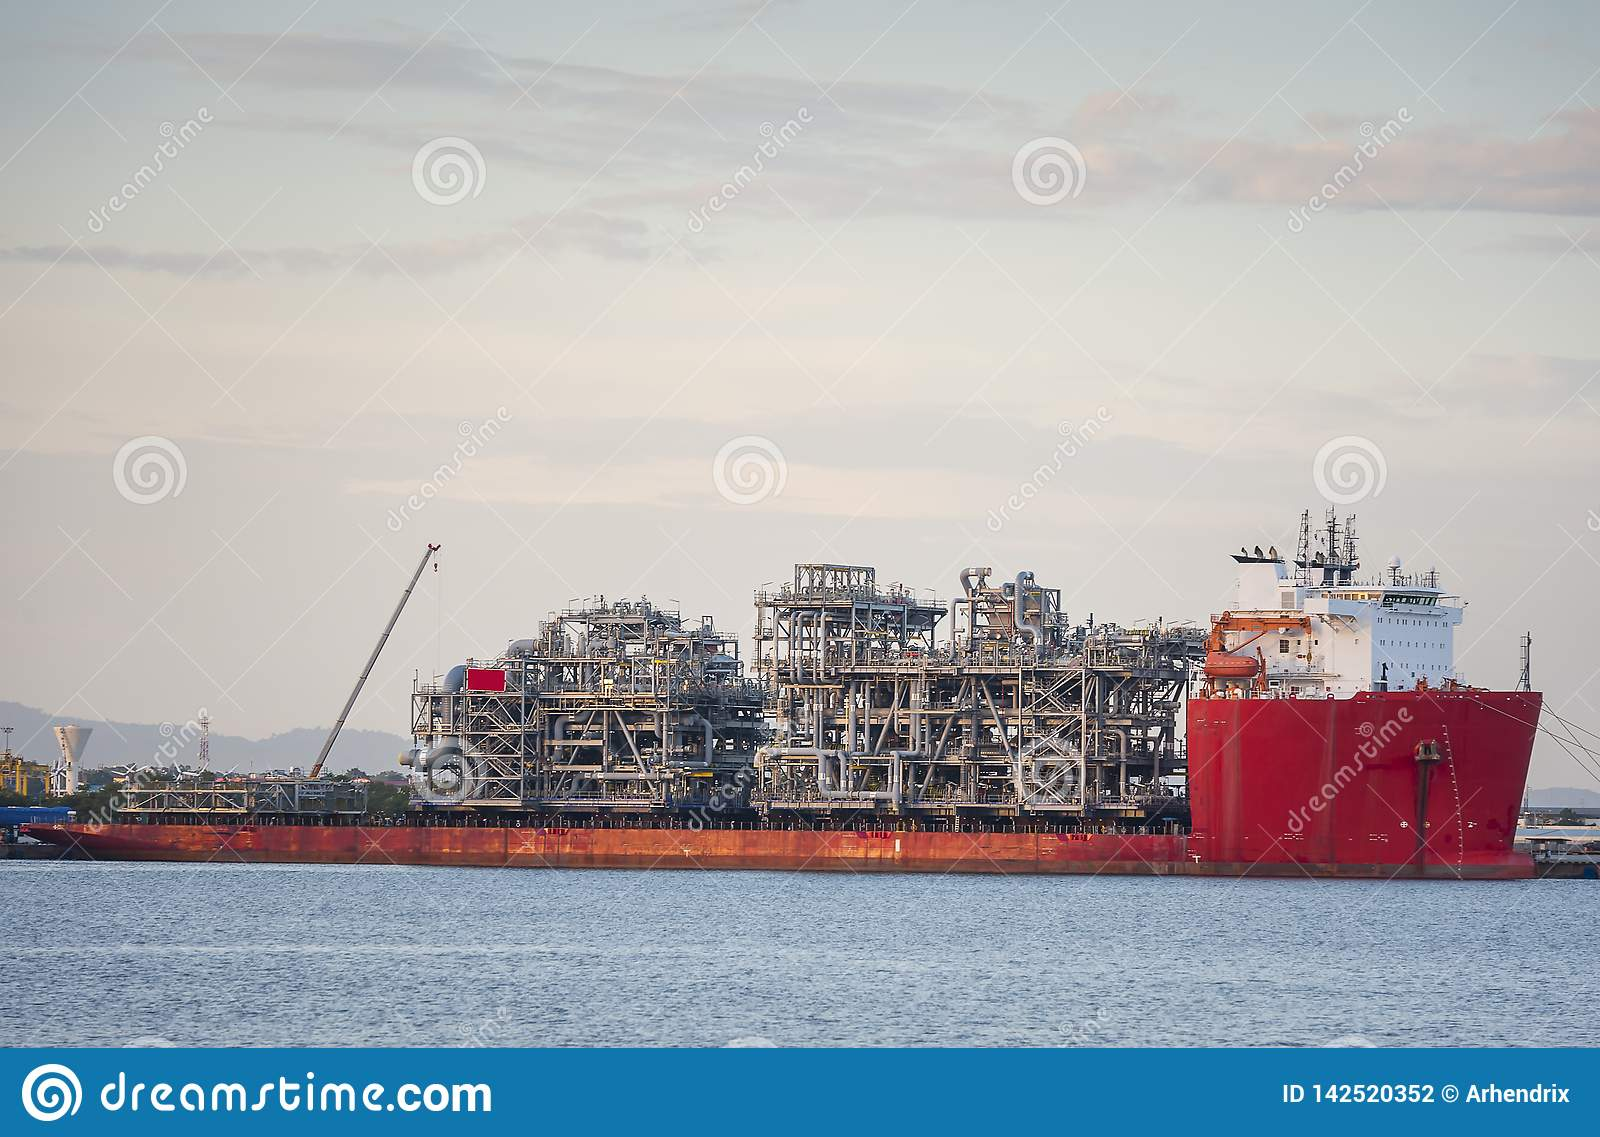 Heavy lift cargo ship barge transporting an oil rig Platform